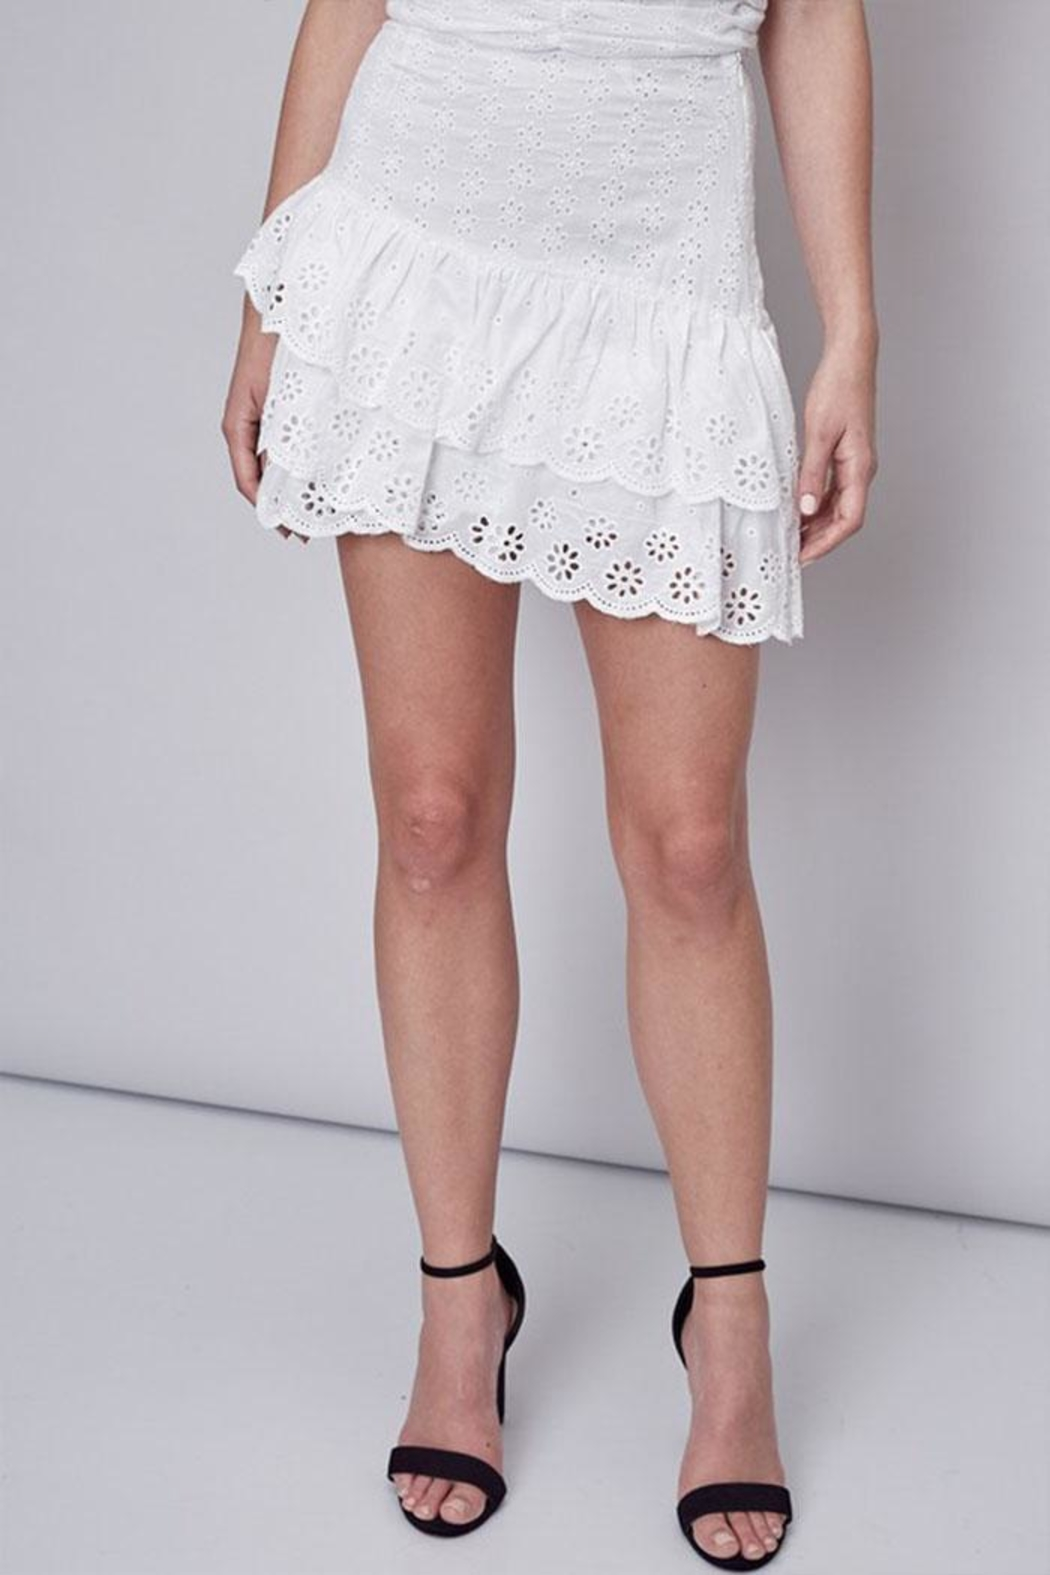 Do & Be Embroidered Ruffle Skirt - Main Image